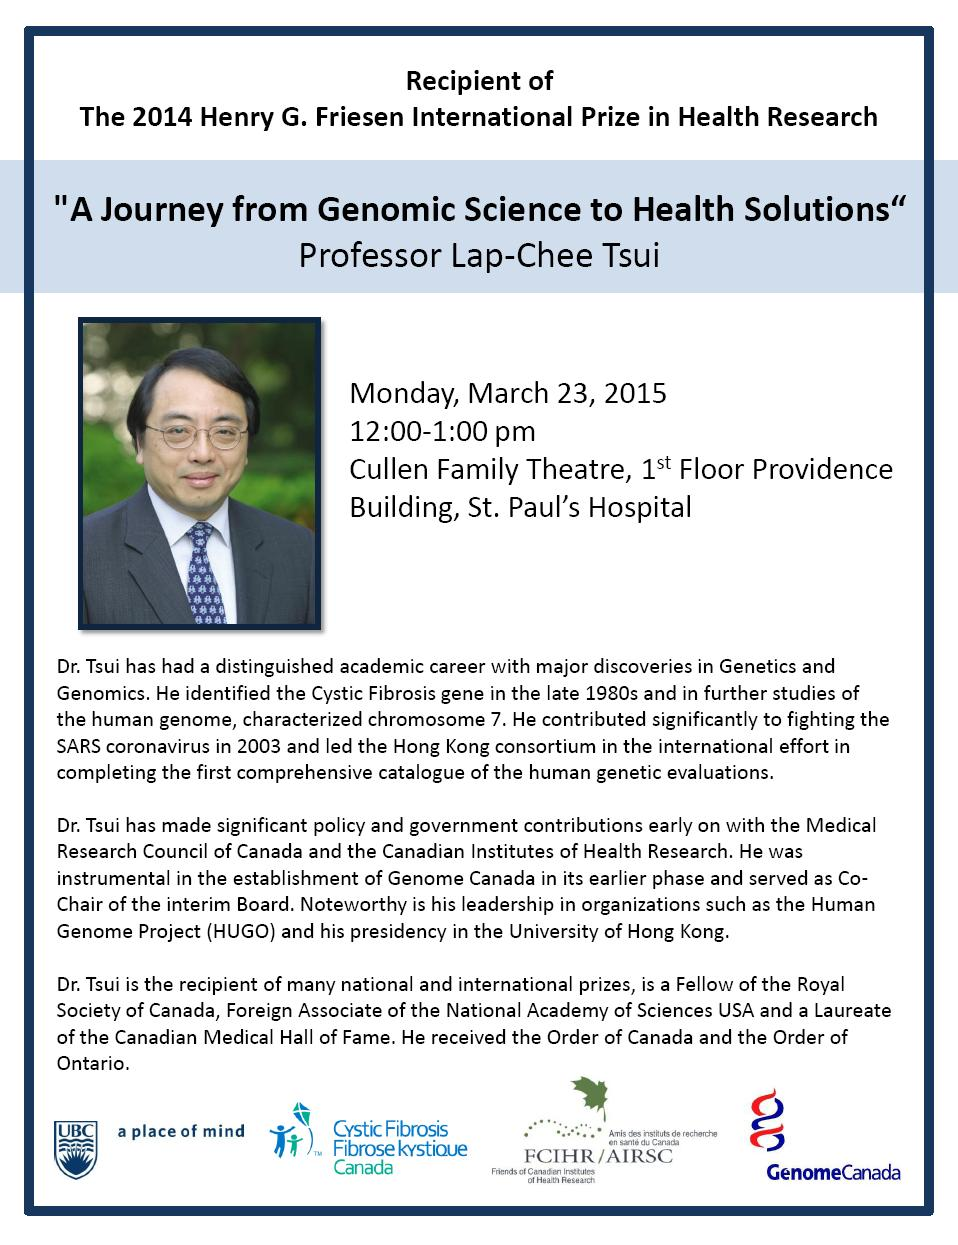 UBC Poster - Dr. Lap-Chee Tsui